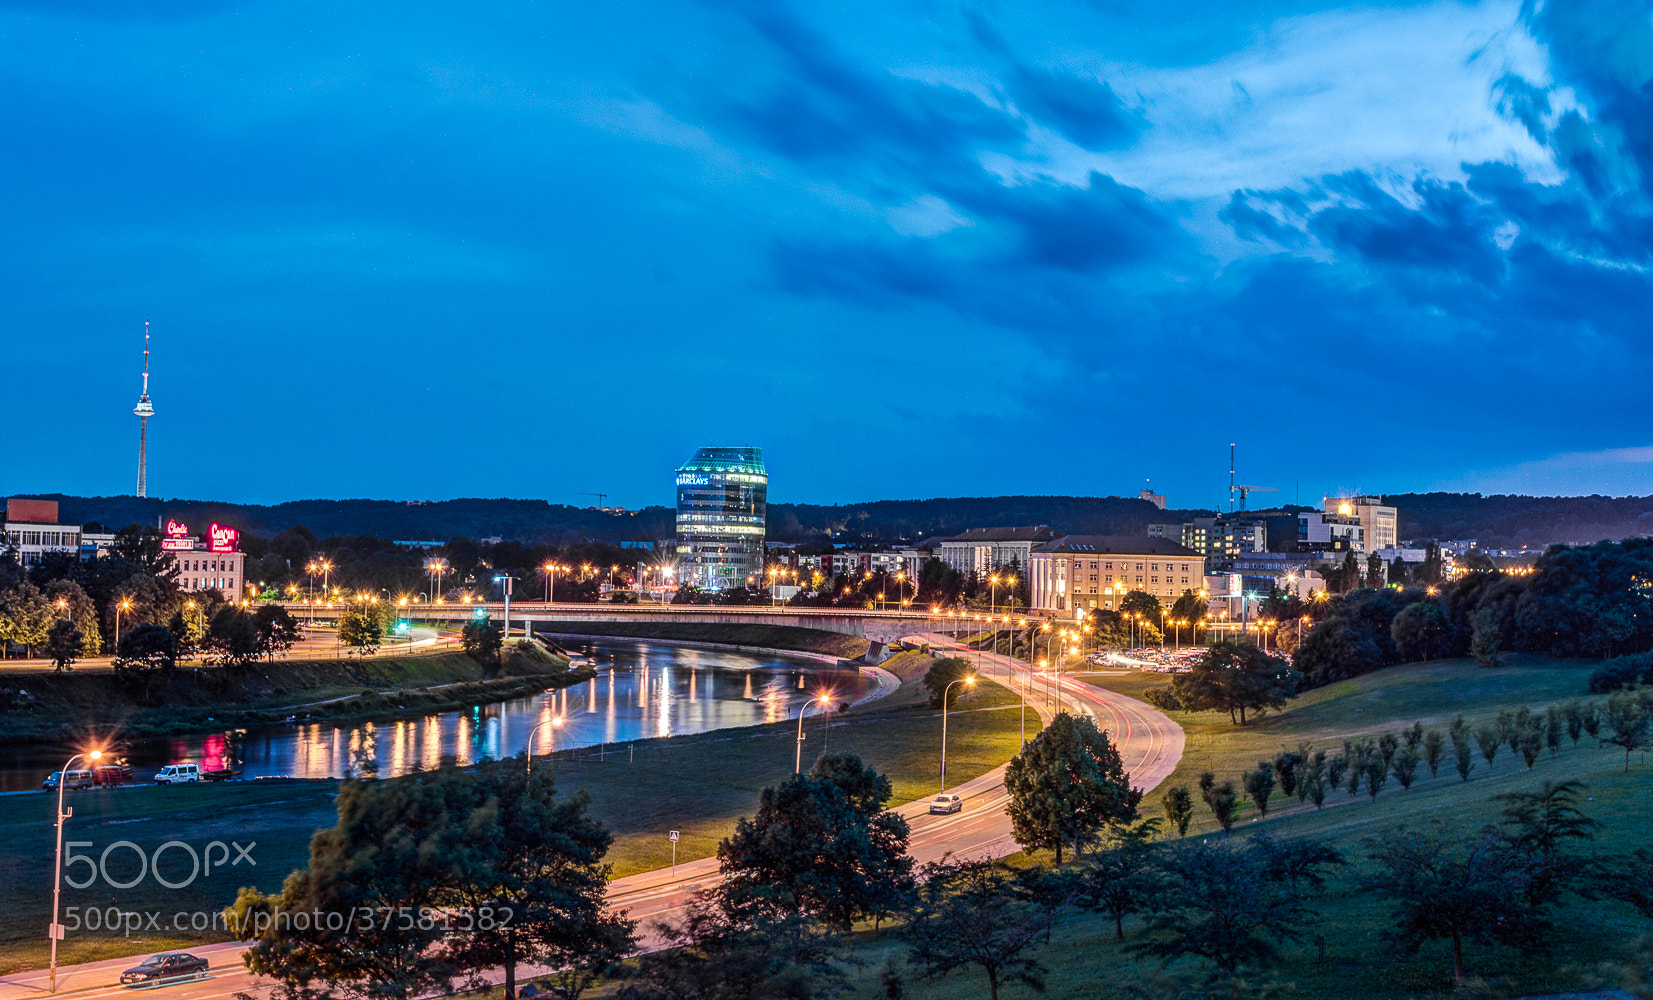 Photograph Vilnius at night by Norbert Durko on 500px